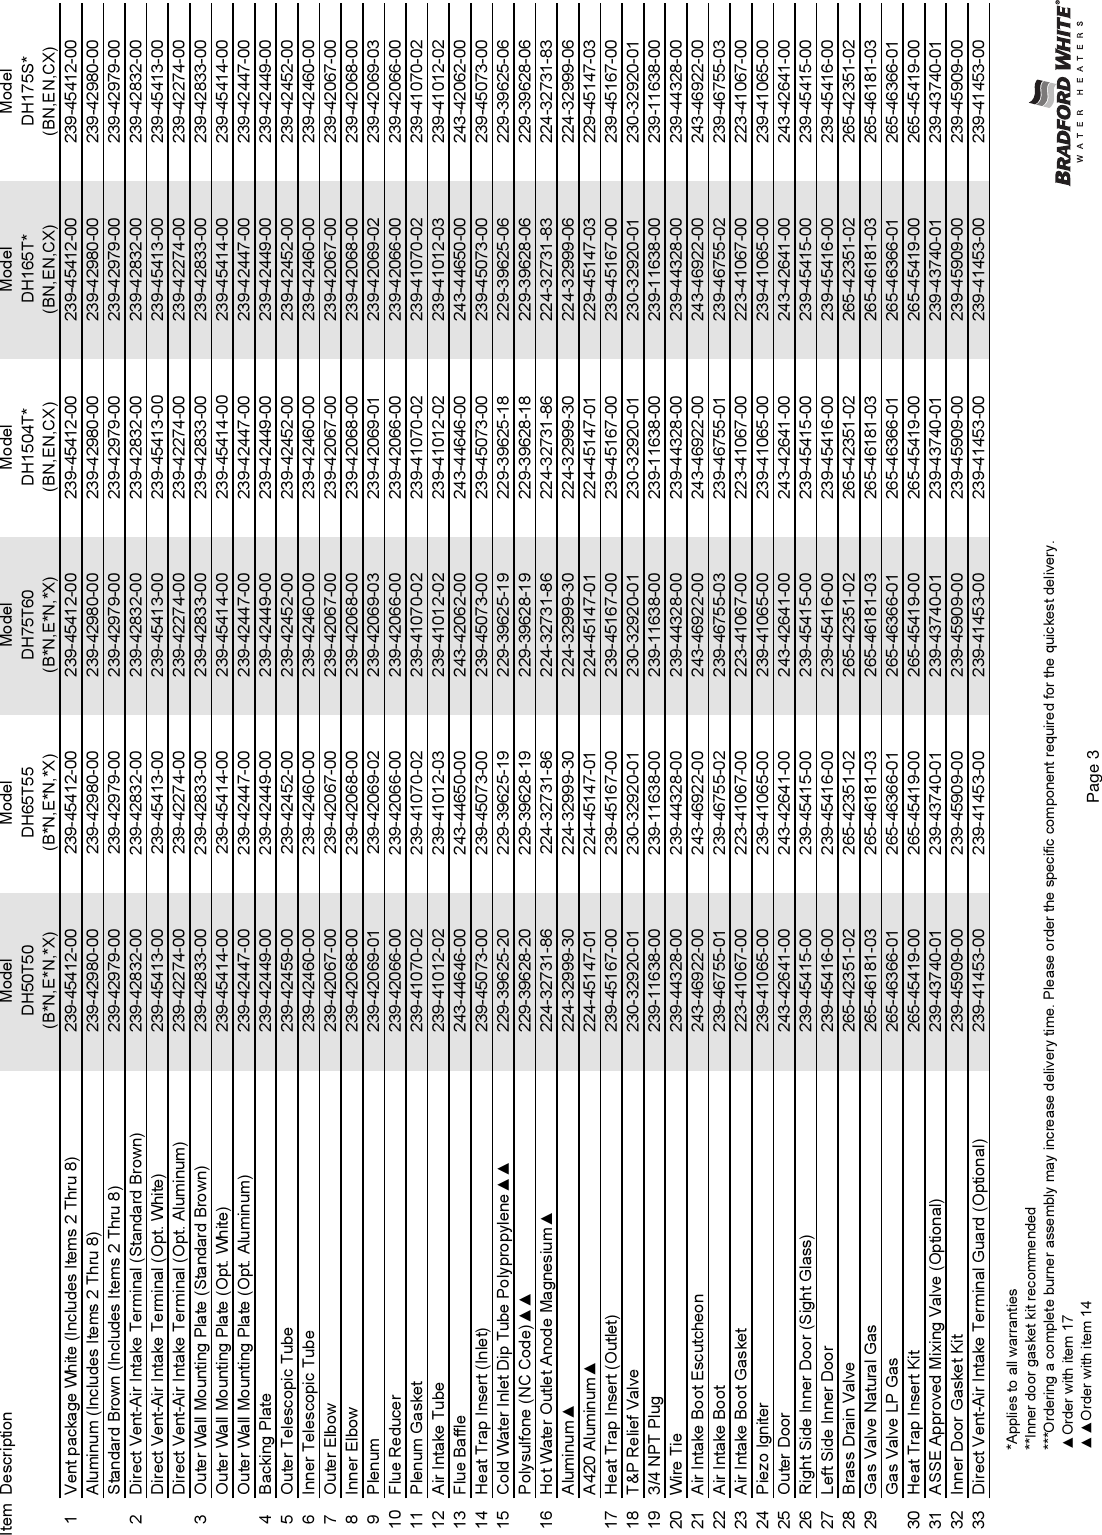 Bradford White Corp Dh1504t Users Manual Parts List Water Heater Wiring Diagram Page 3 Of 8